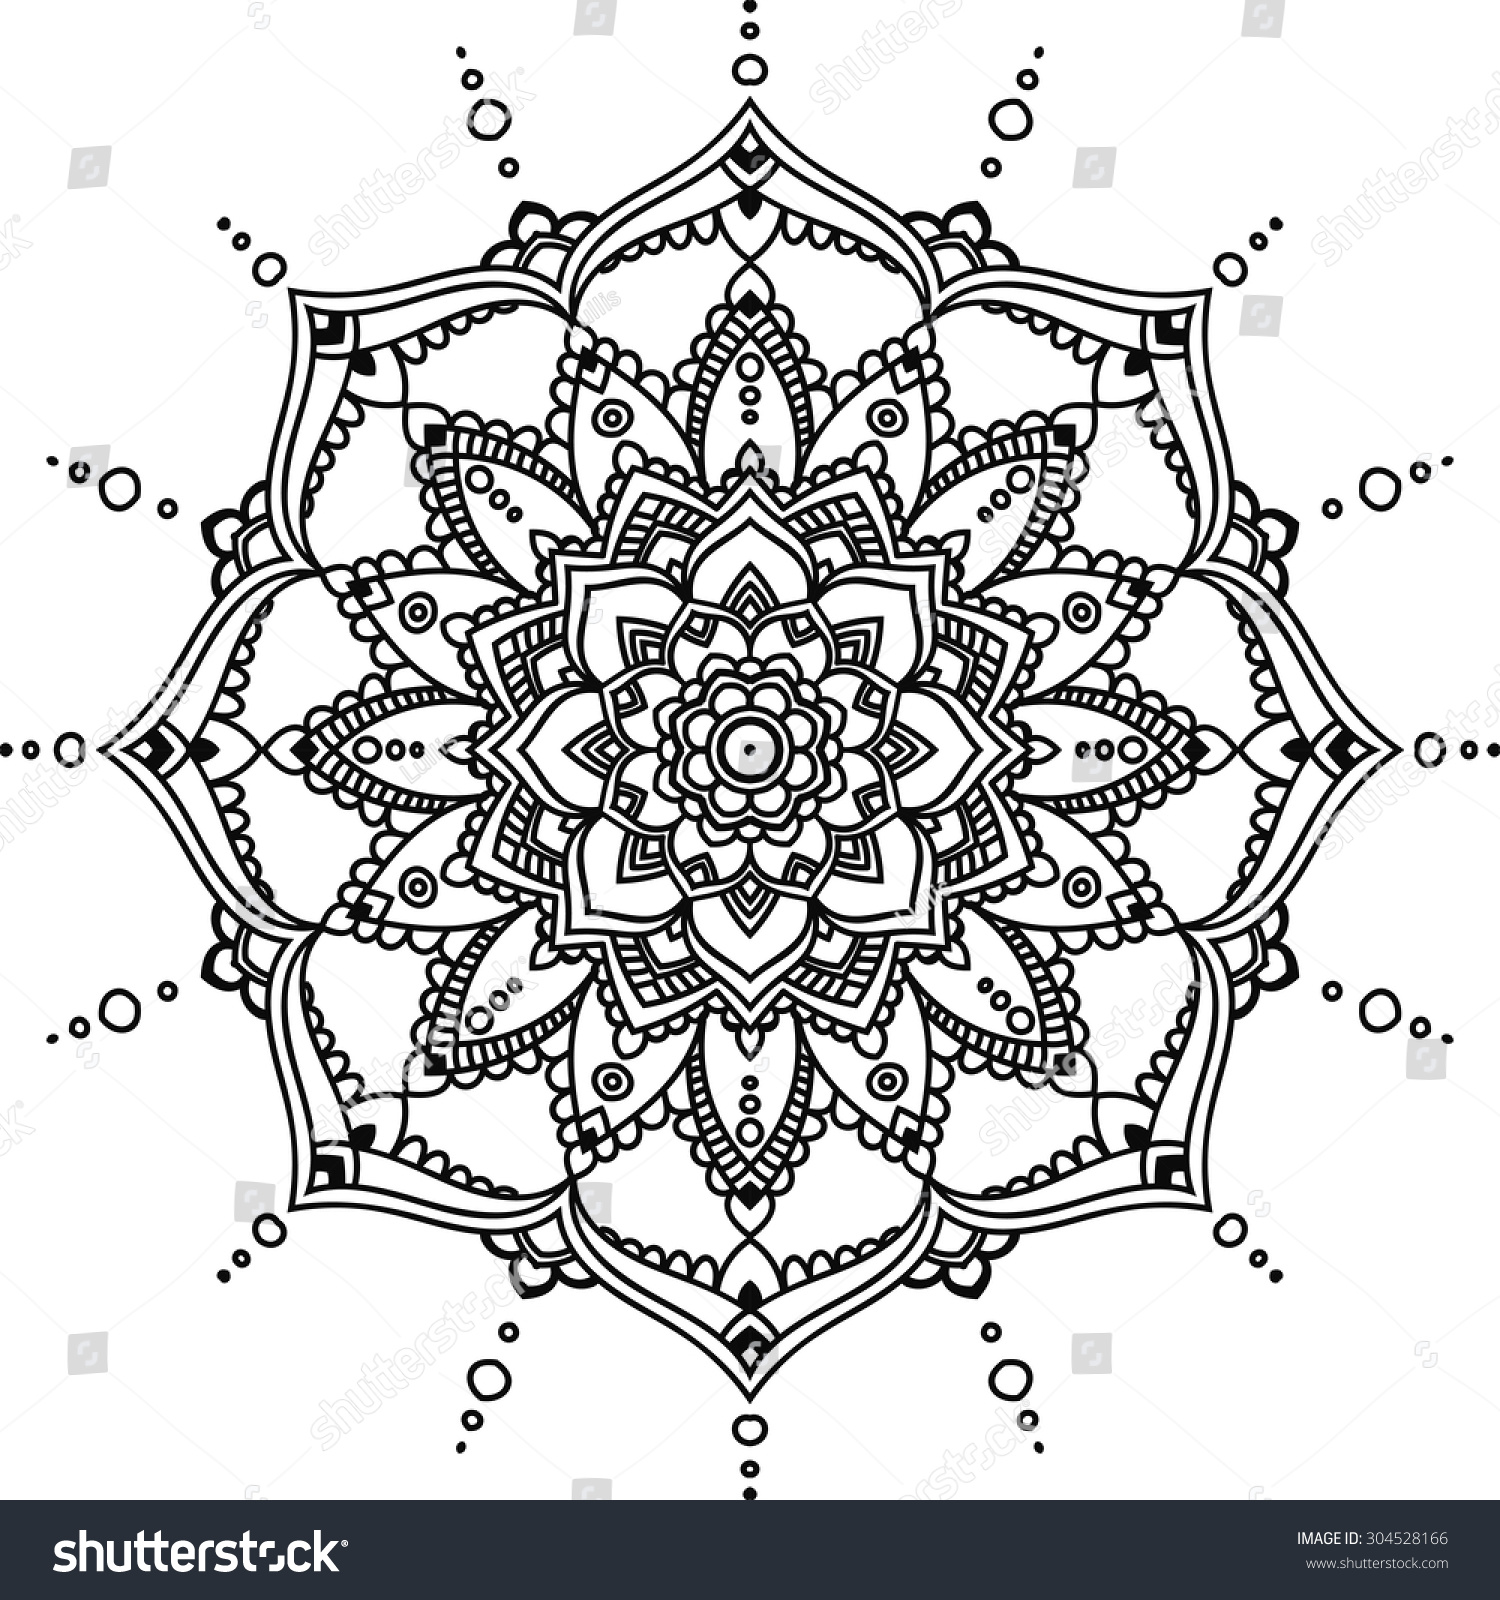 Simple Black Indian Mandala On White Lager-vektor ... | 1500 x 1600 jpeg 650kB